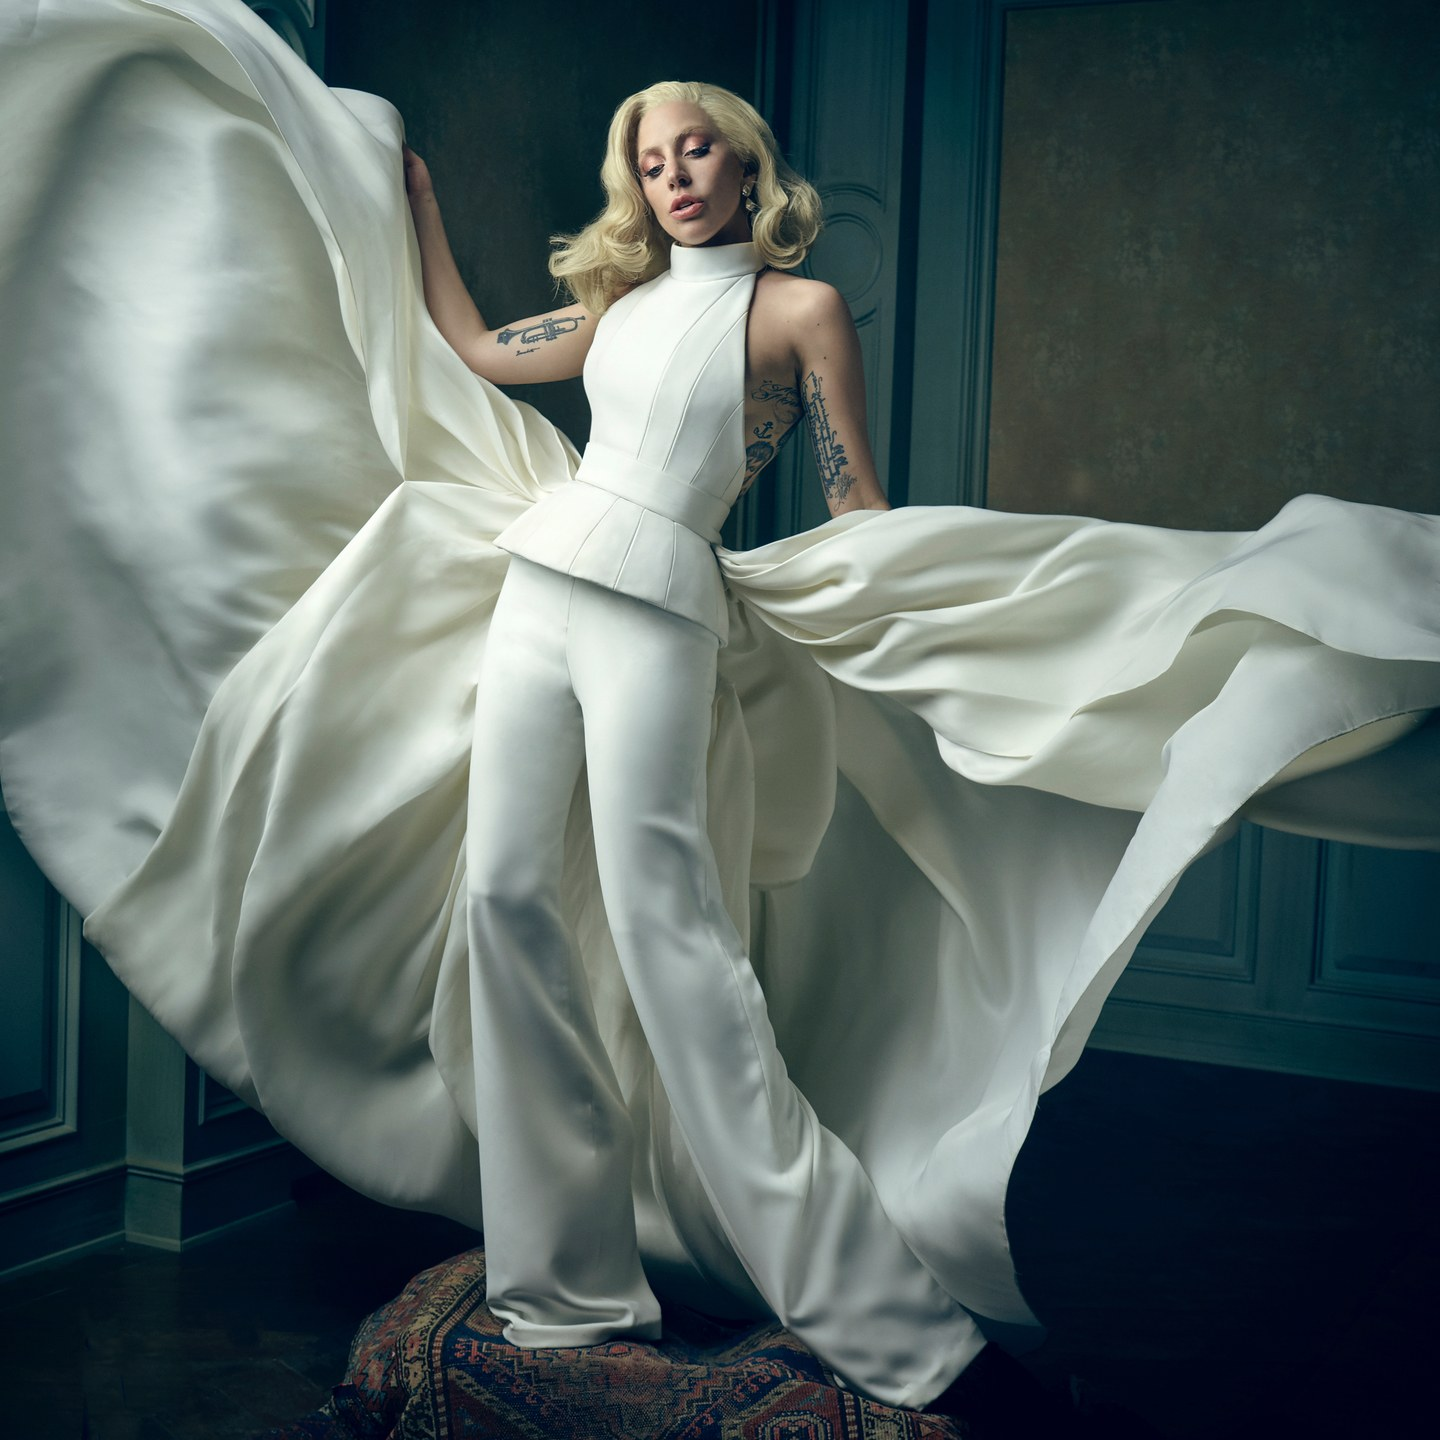 Vanity fair - mark seliger - lady gaga